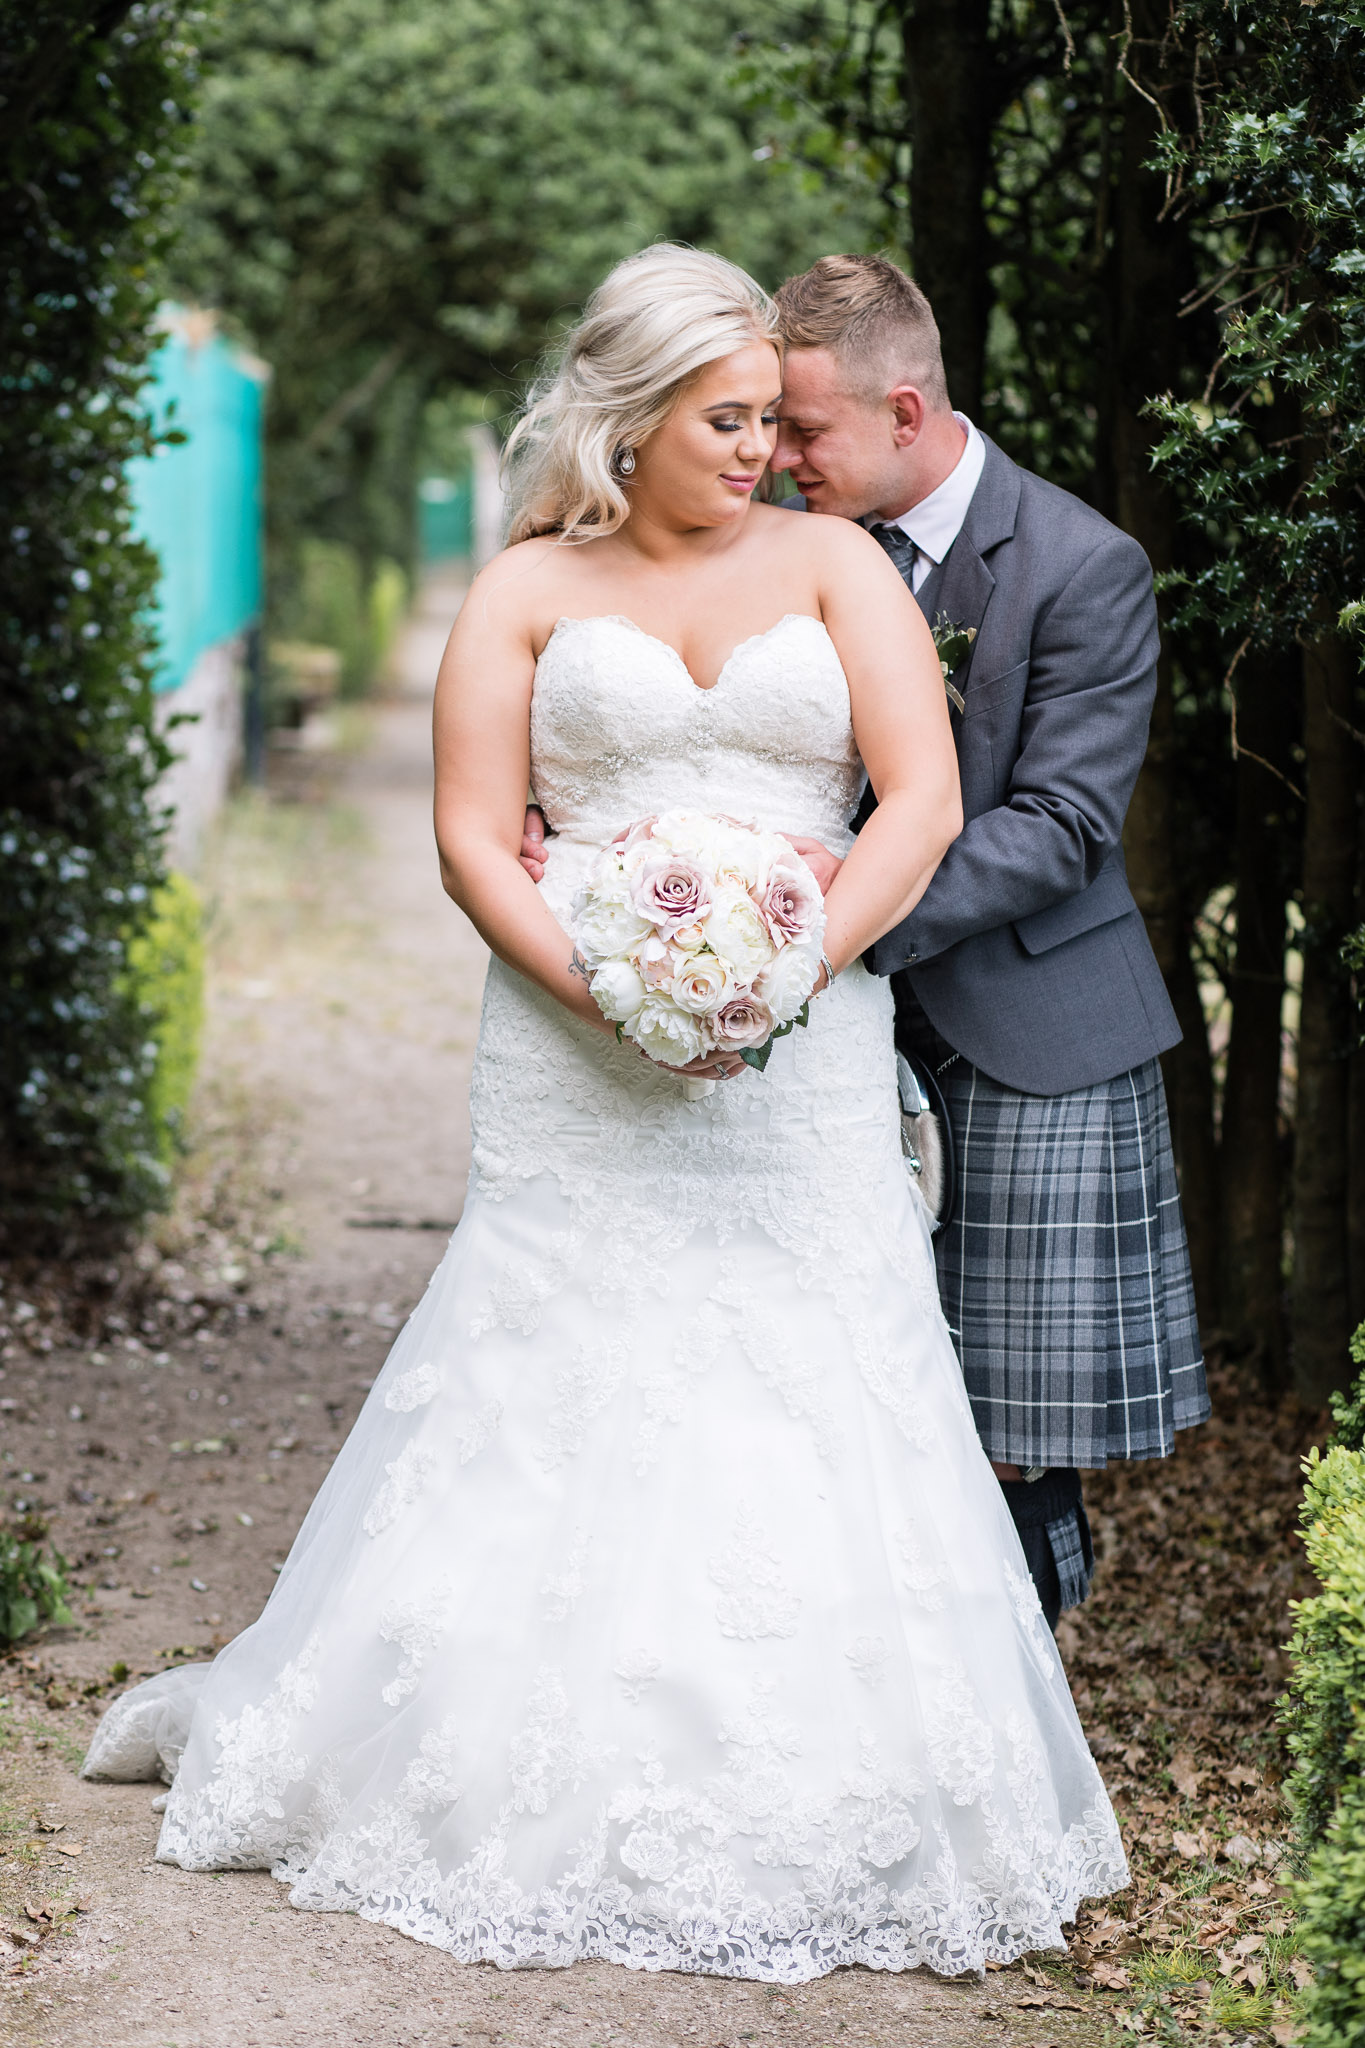 Bride and groom wedding portrait - Wedding photographer aberdeenshire, aberdeen, huntly, scotland - Debbie Dee Photography